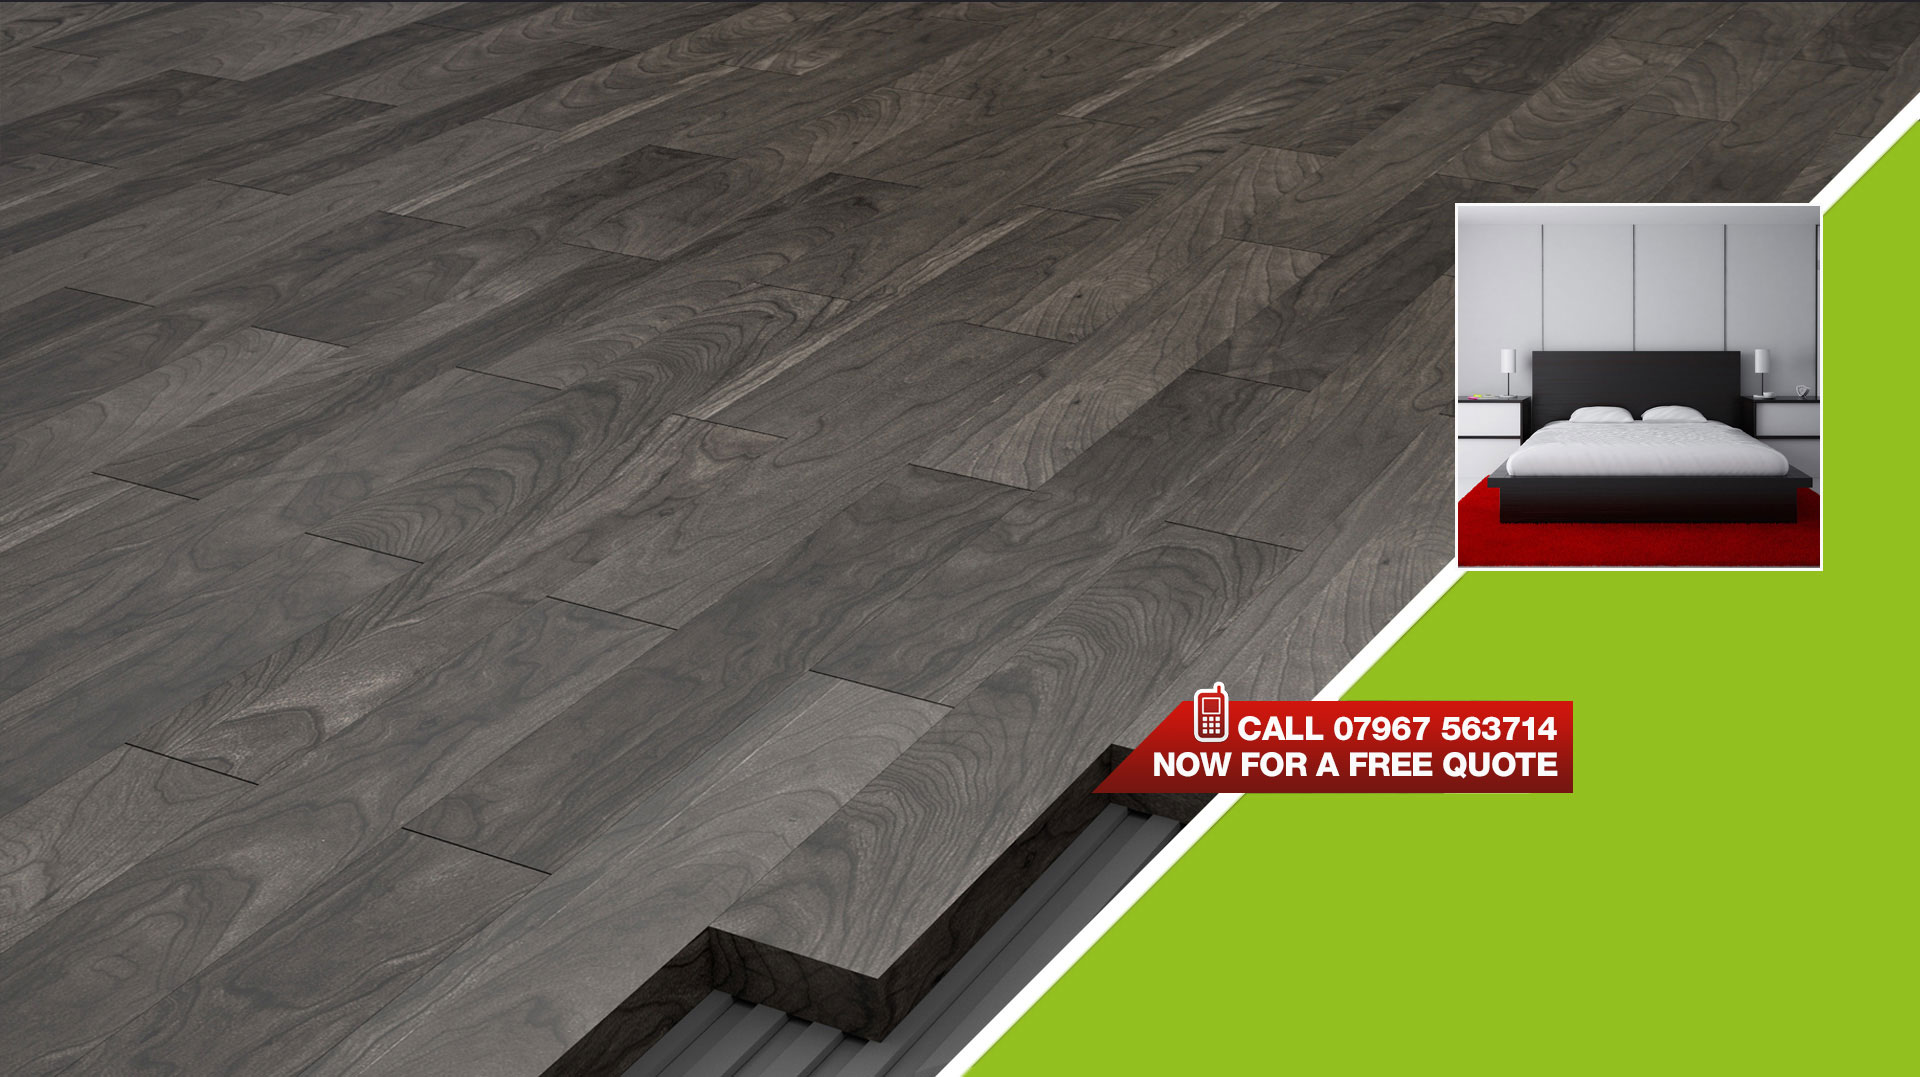 Cutting Edge Flooring Quality Flooring Solutions And Services - Cutting edge wood floors